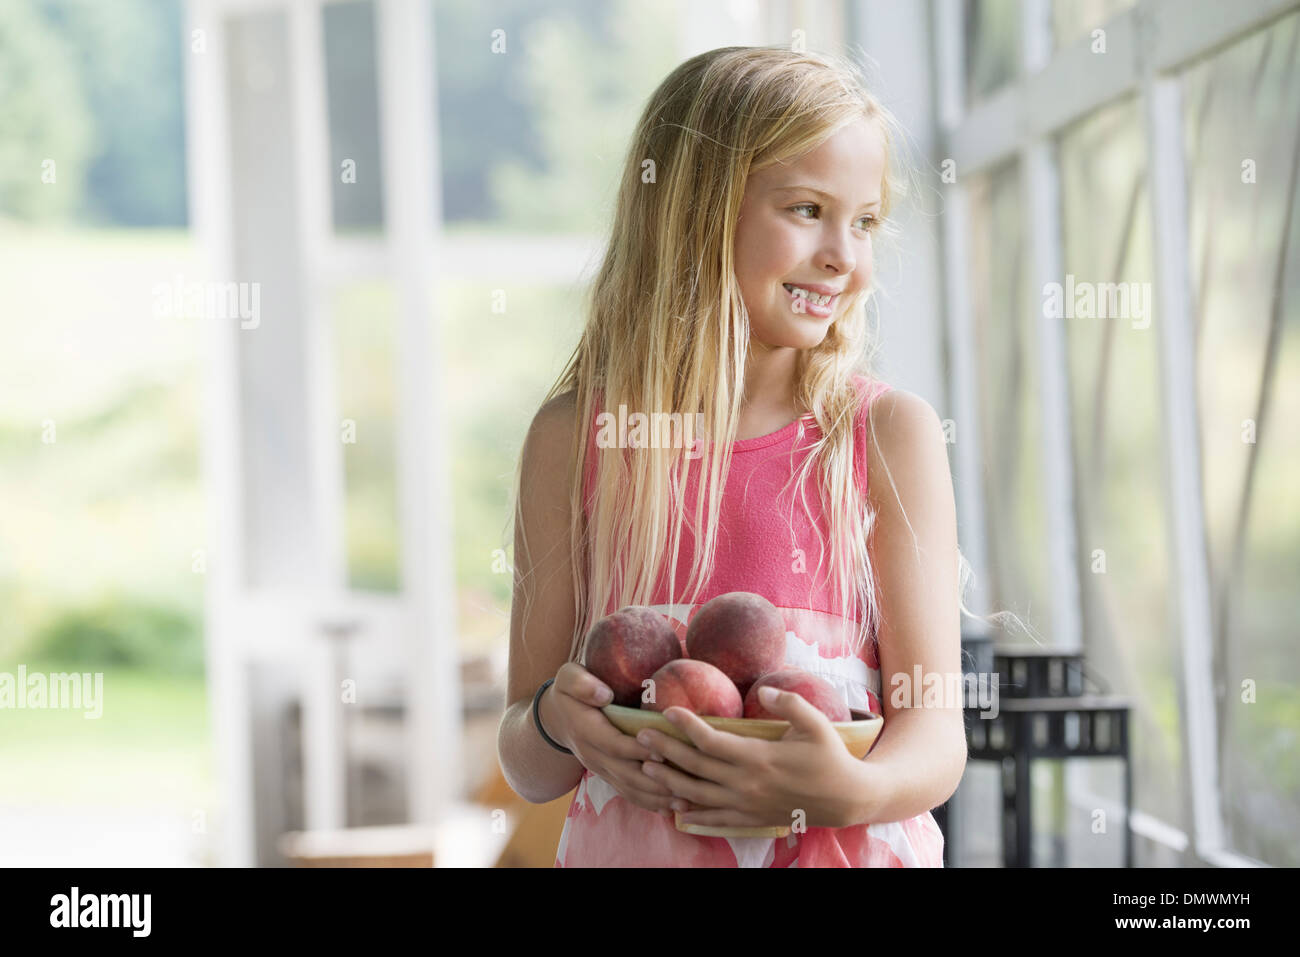 A young girl holding an armful of fresh peaches. - Stock Image